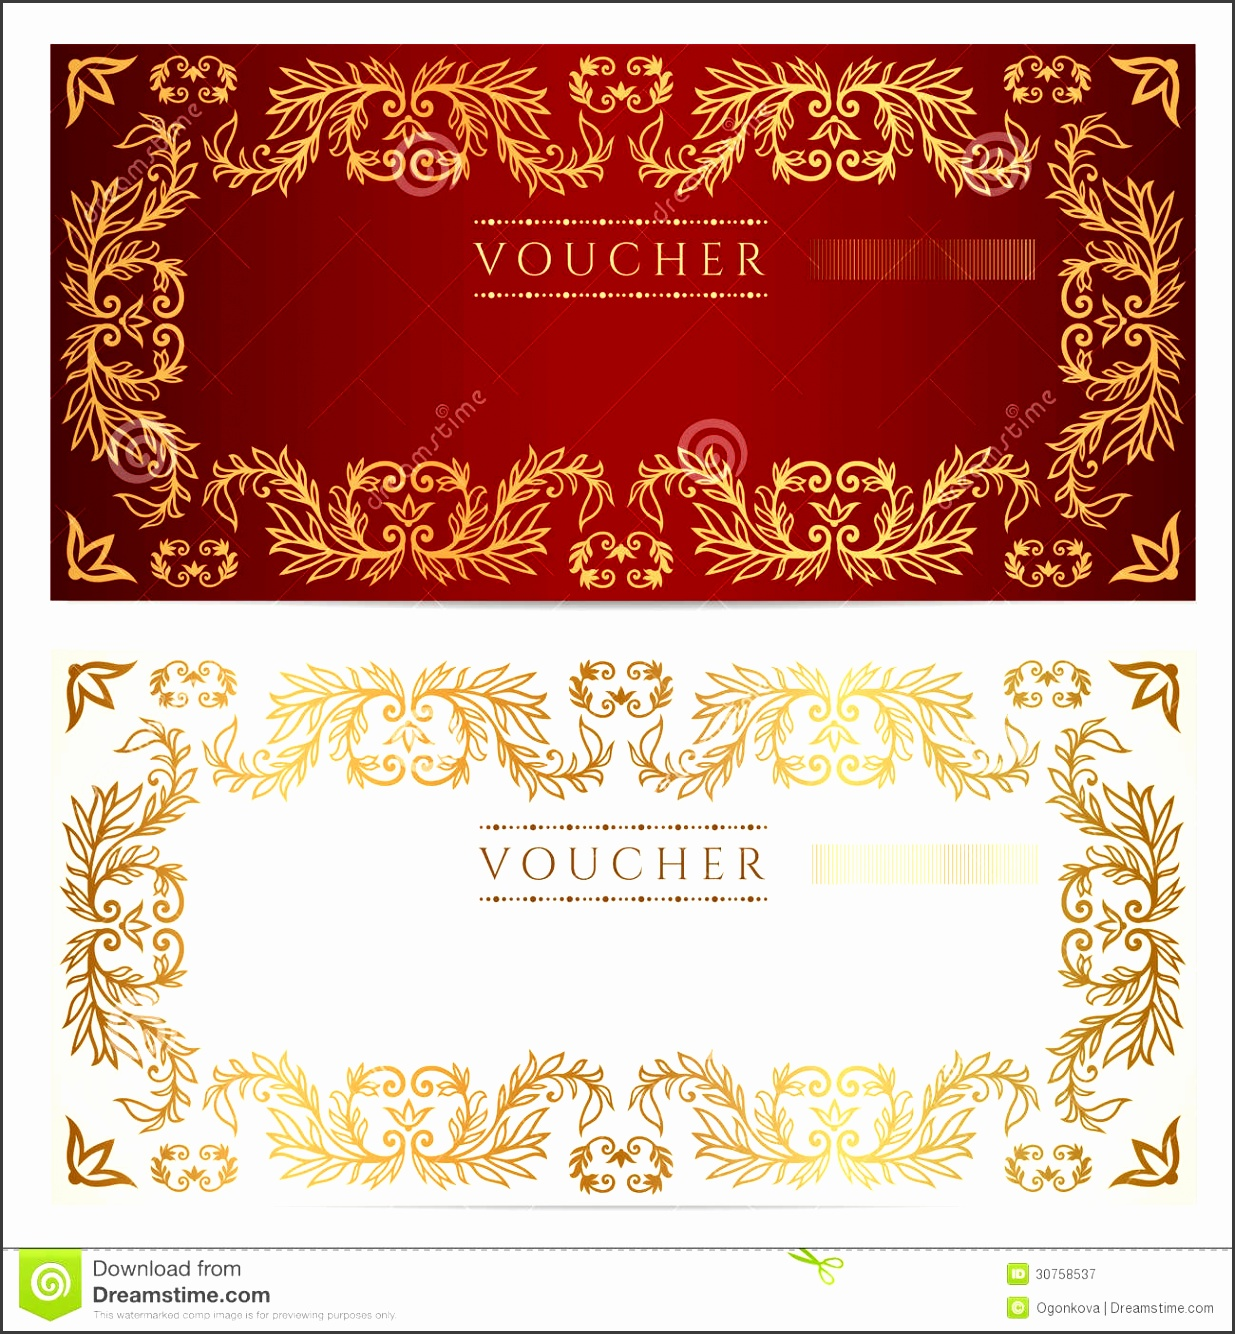 Voucher t certificate template Gold pattern